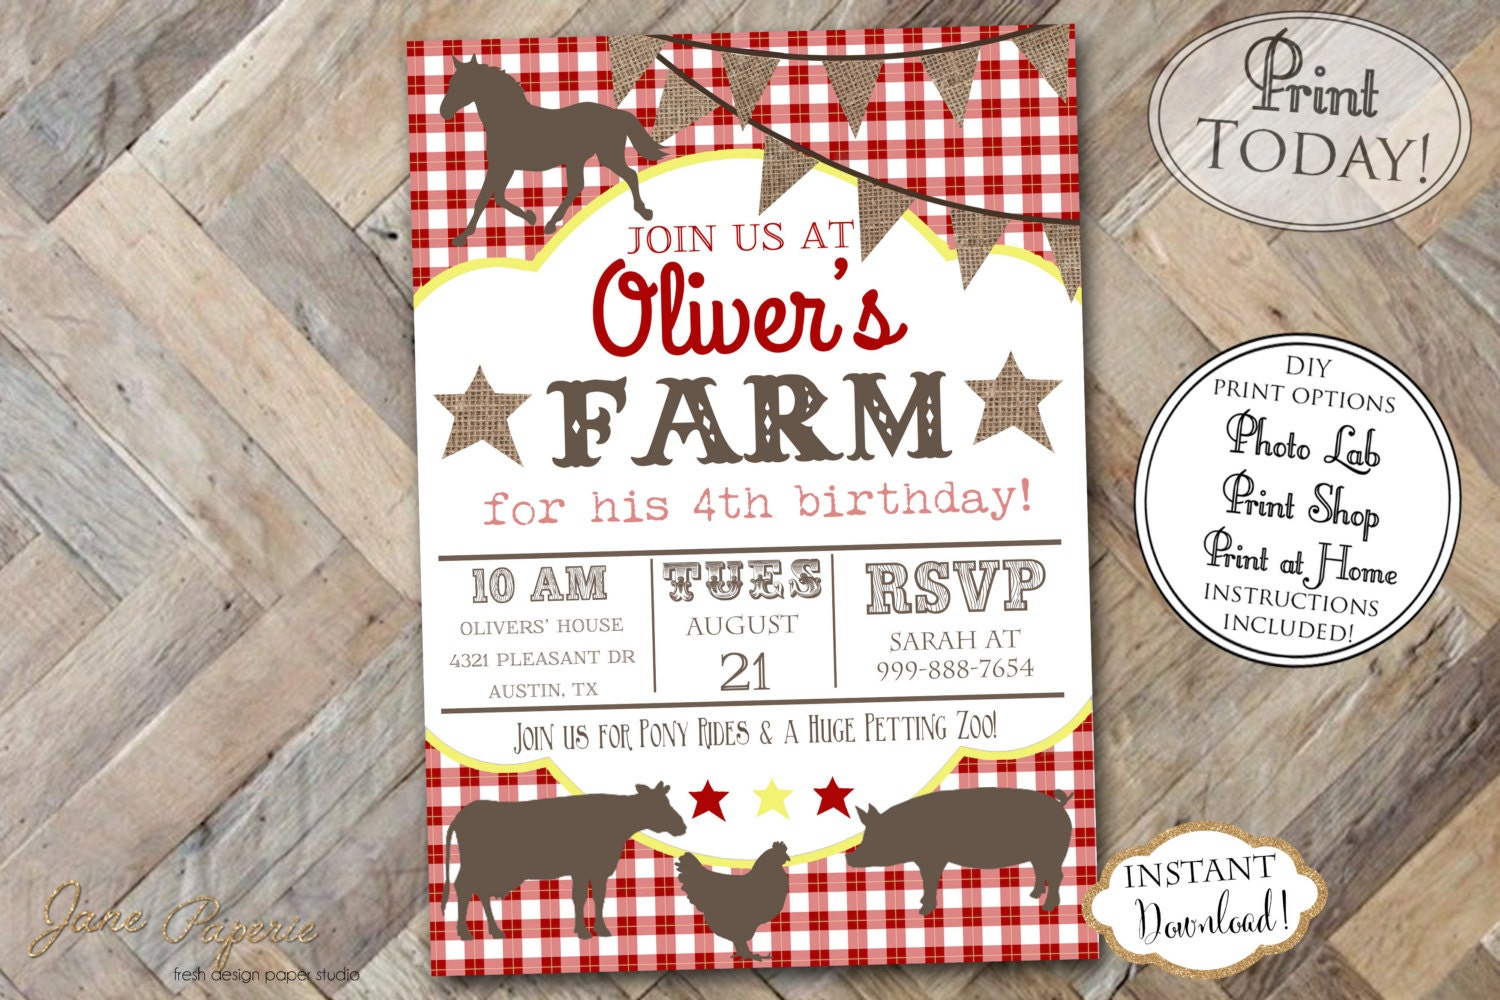 INSTANT DOWNLOAD Farm Birthday Invitation Red Gingham | Etsy